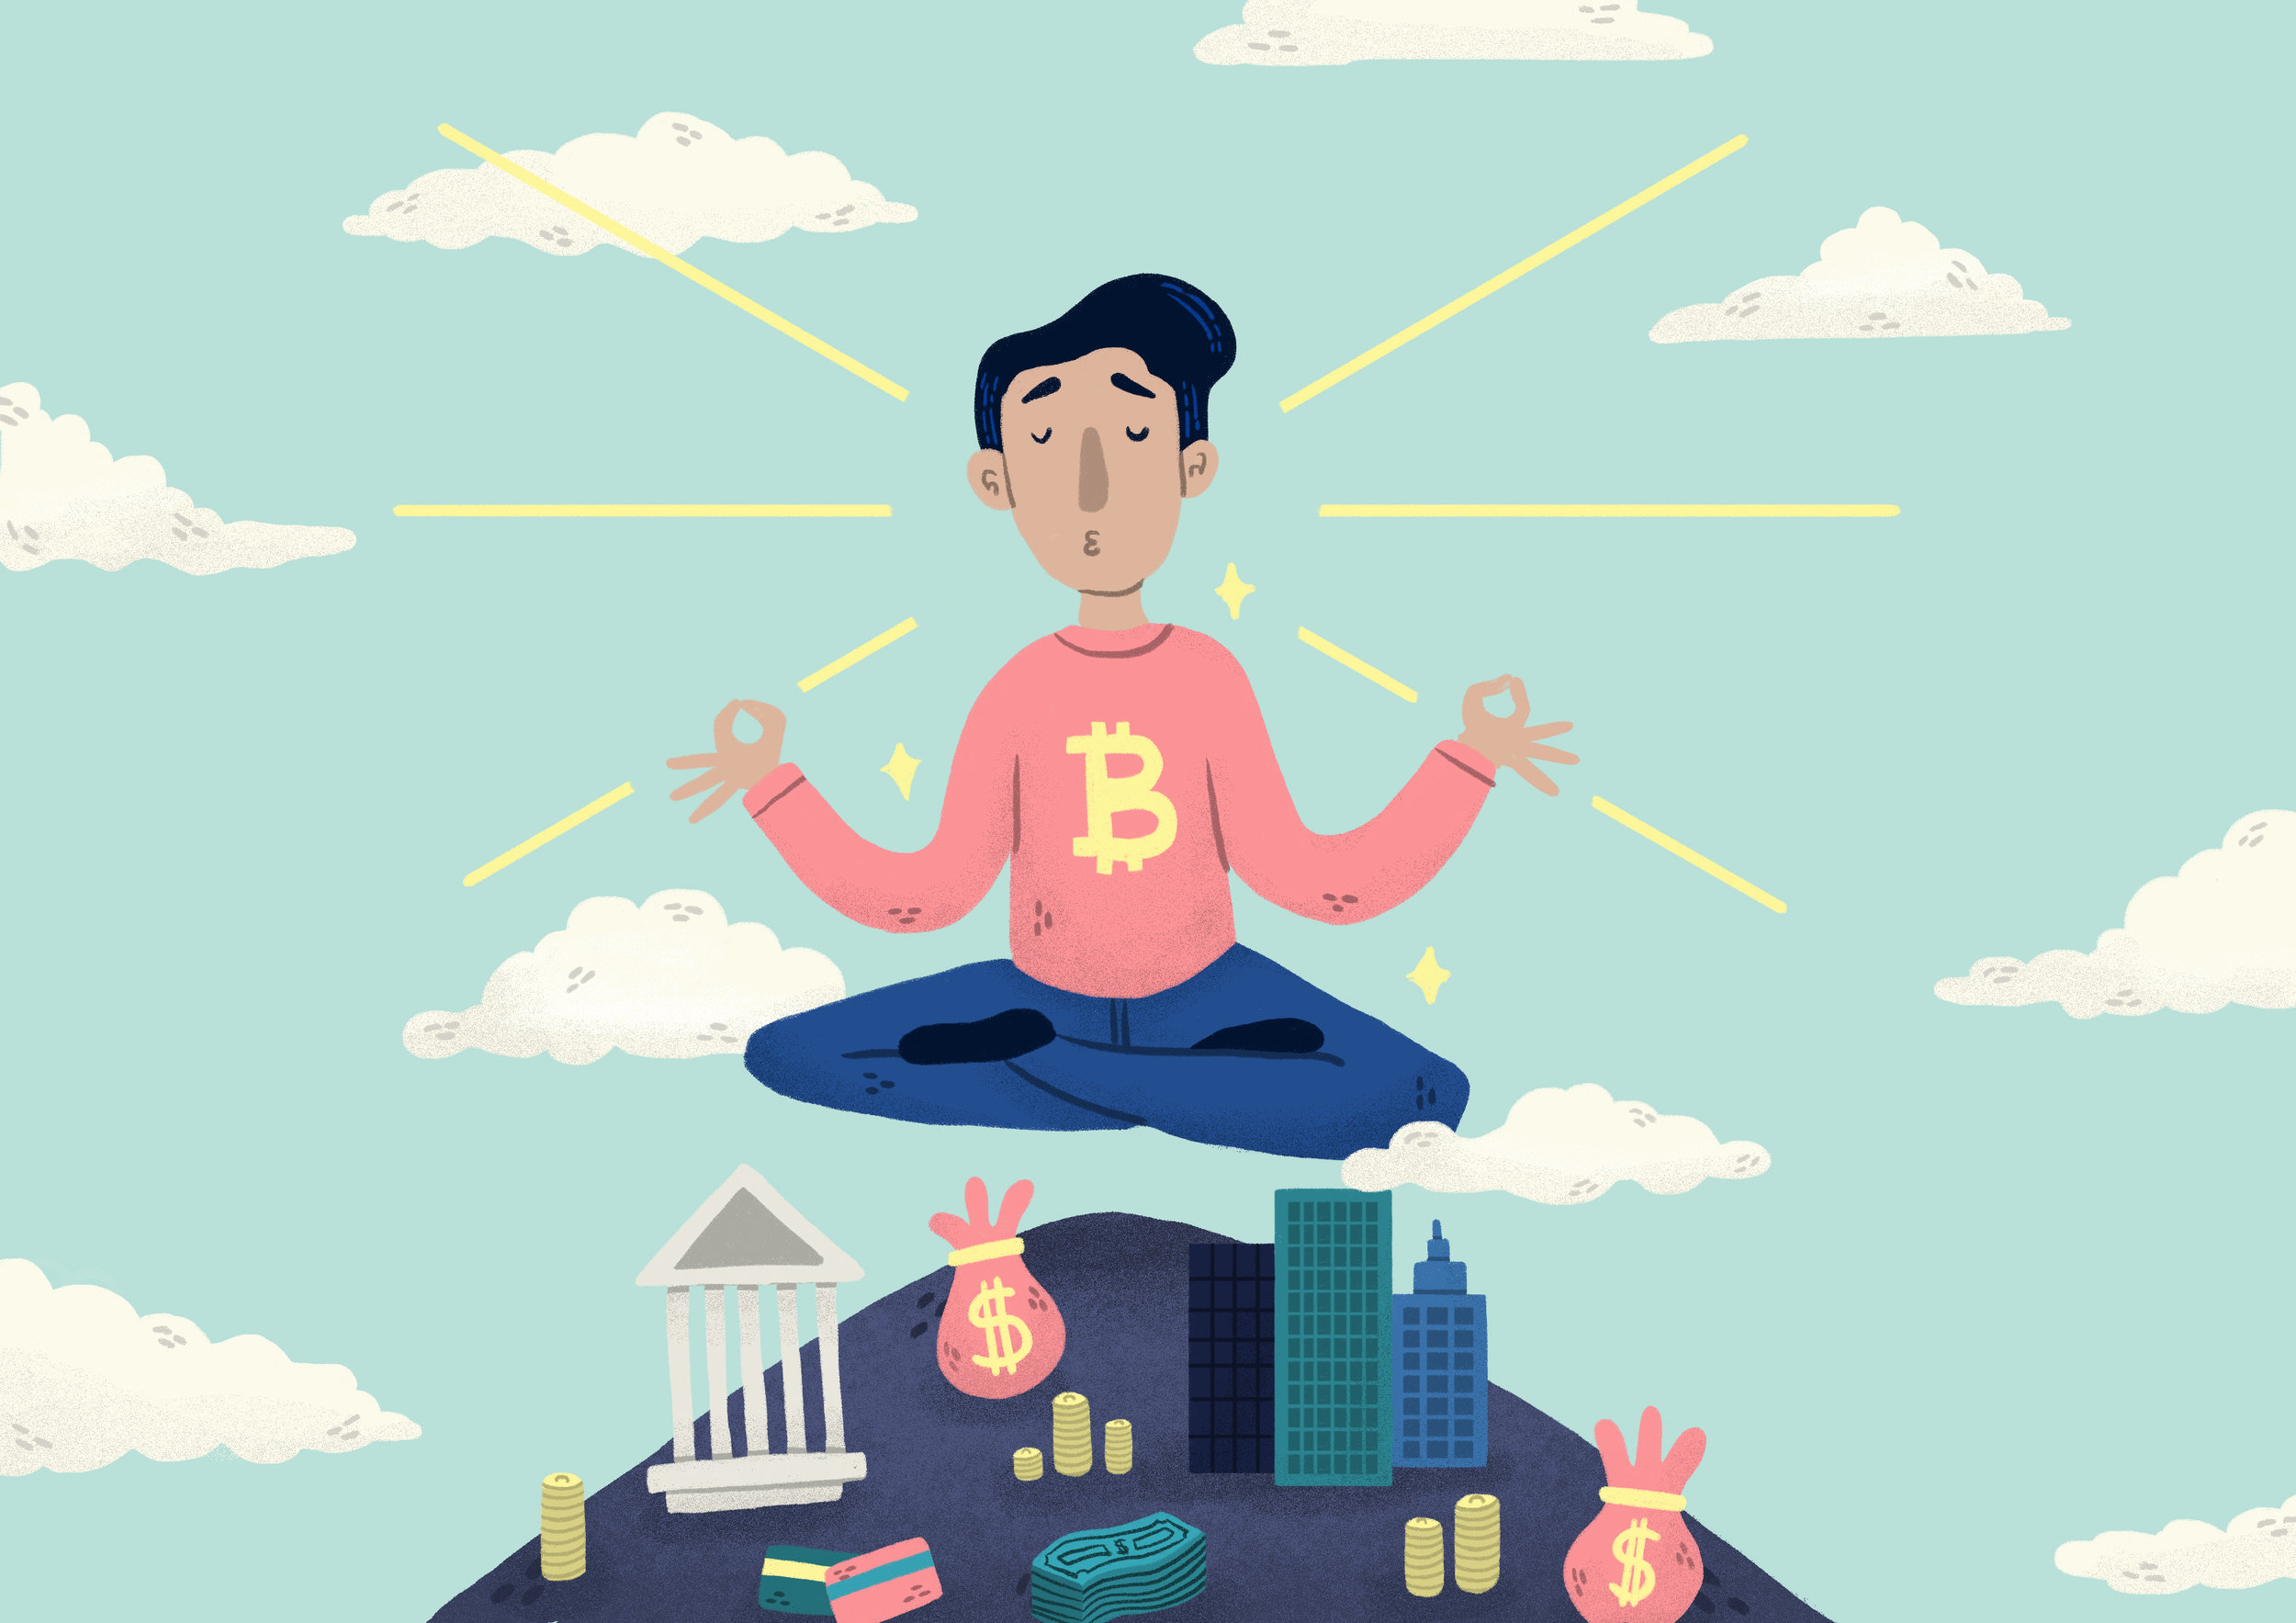 1-lets-go-bitcoin-what-is-bitcoin.jpg